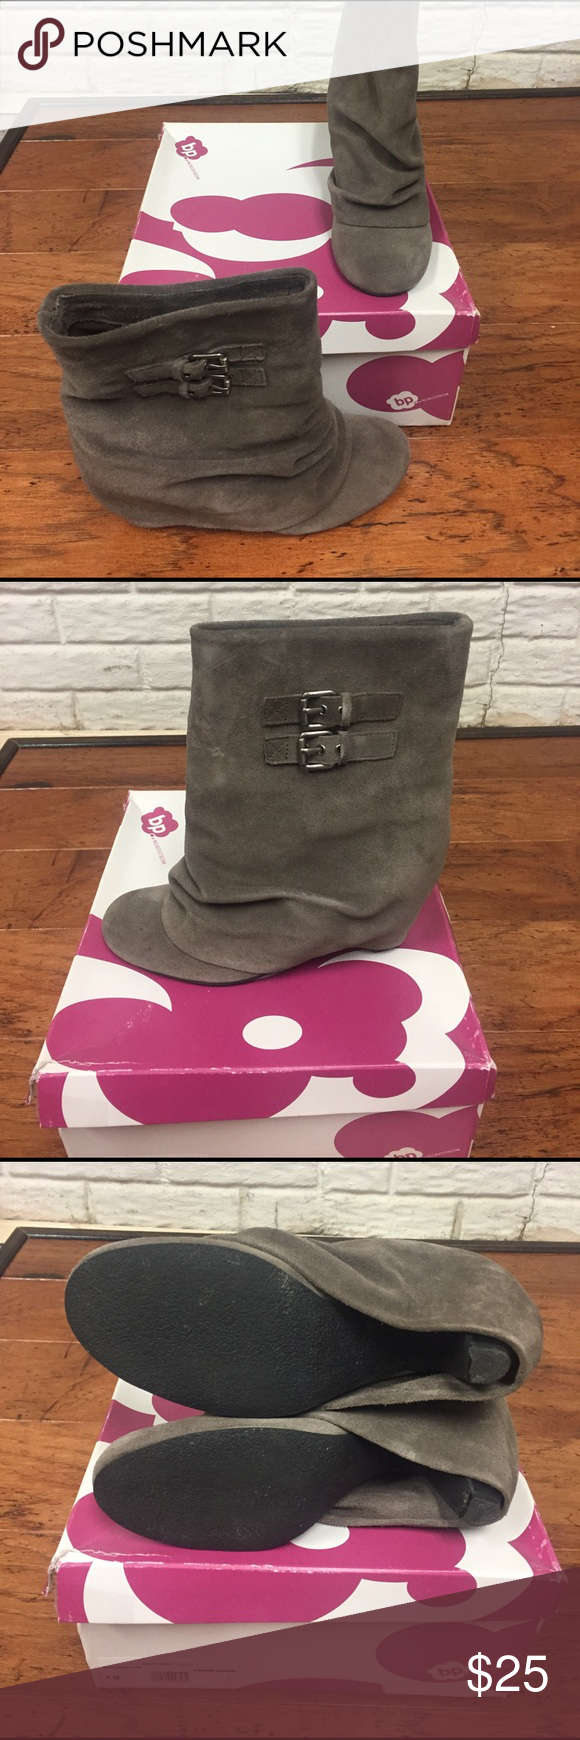 Booties Taupe suede booties bp Shoes Ankle Boots & Booties